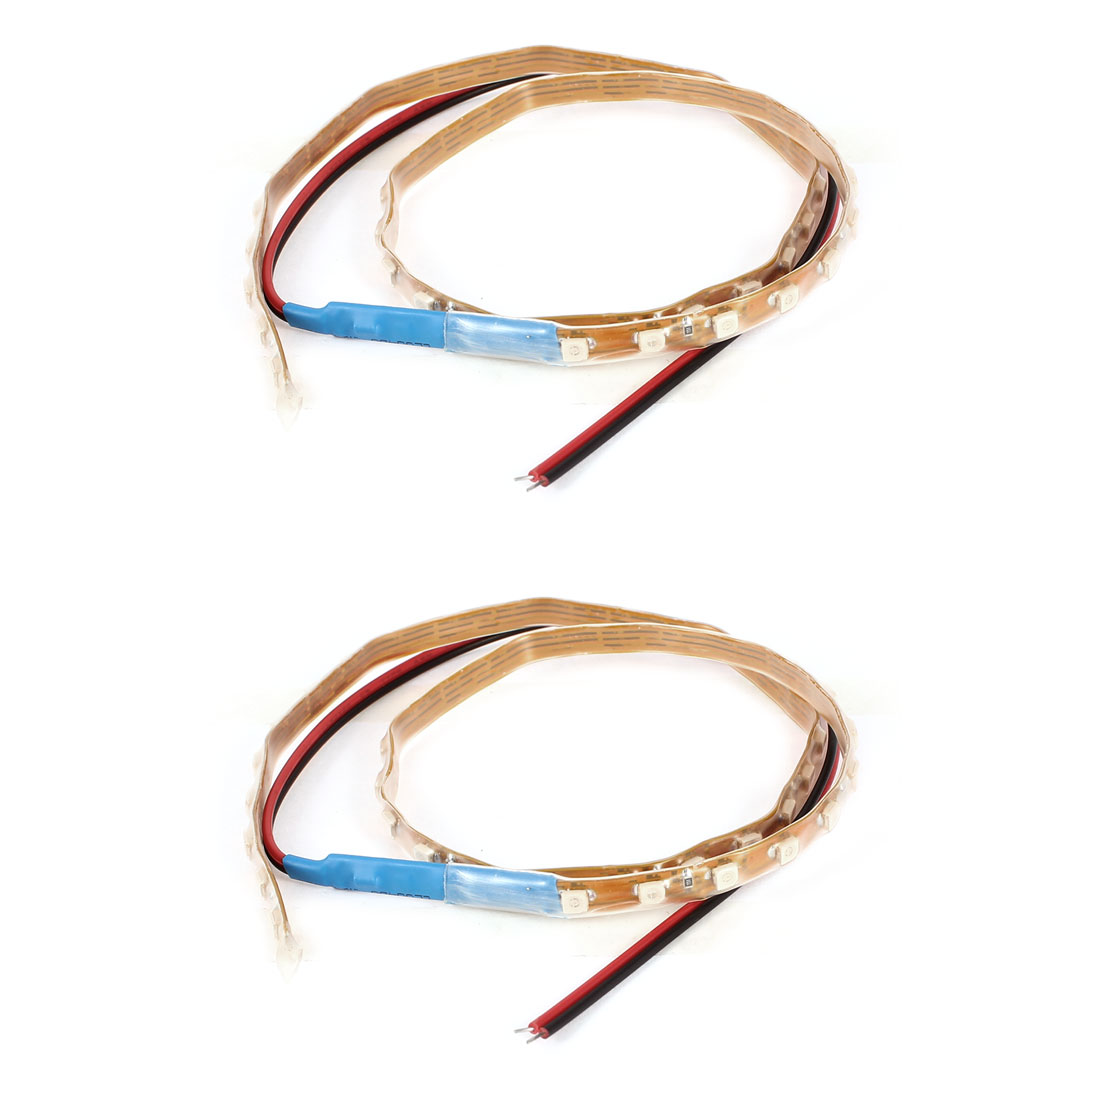 2 Pcs Auto Decor DC 12V Interior Blue 1210 SMD 45 LED Flexible Strip Light Lamp 45CM Long Internal